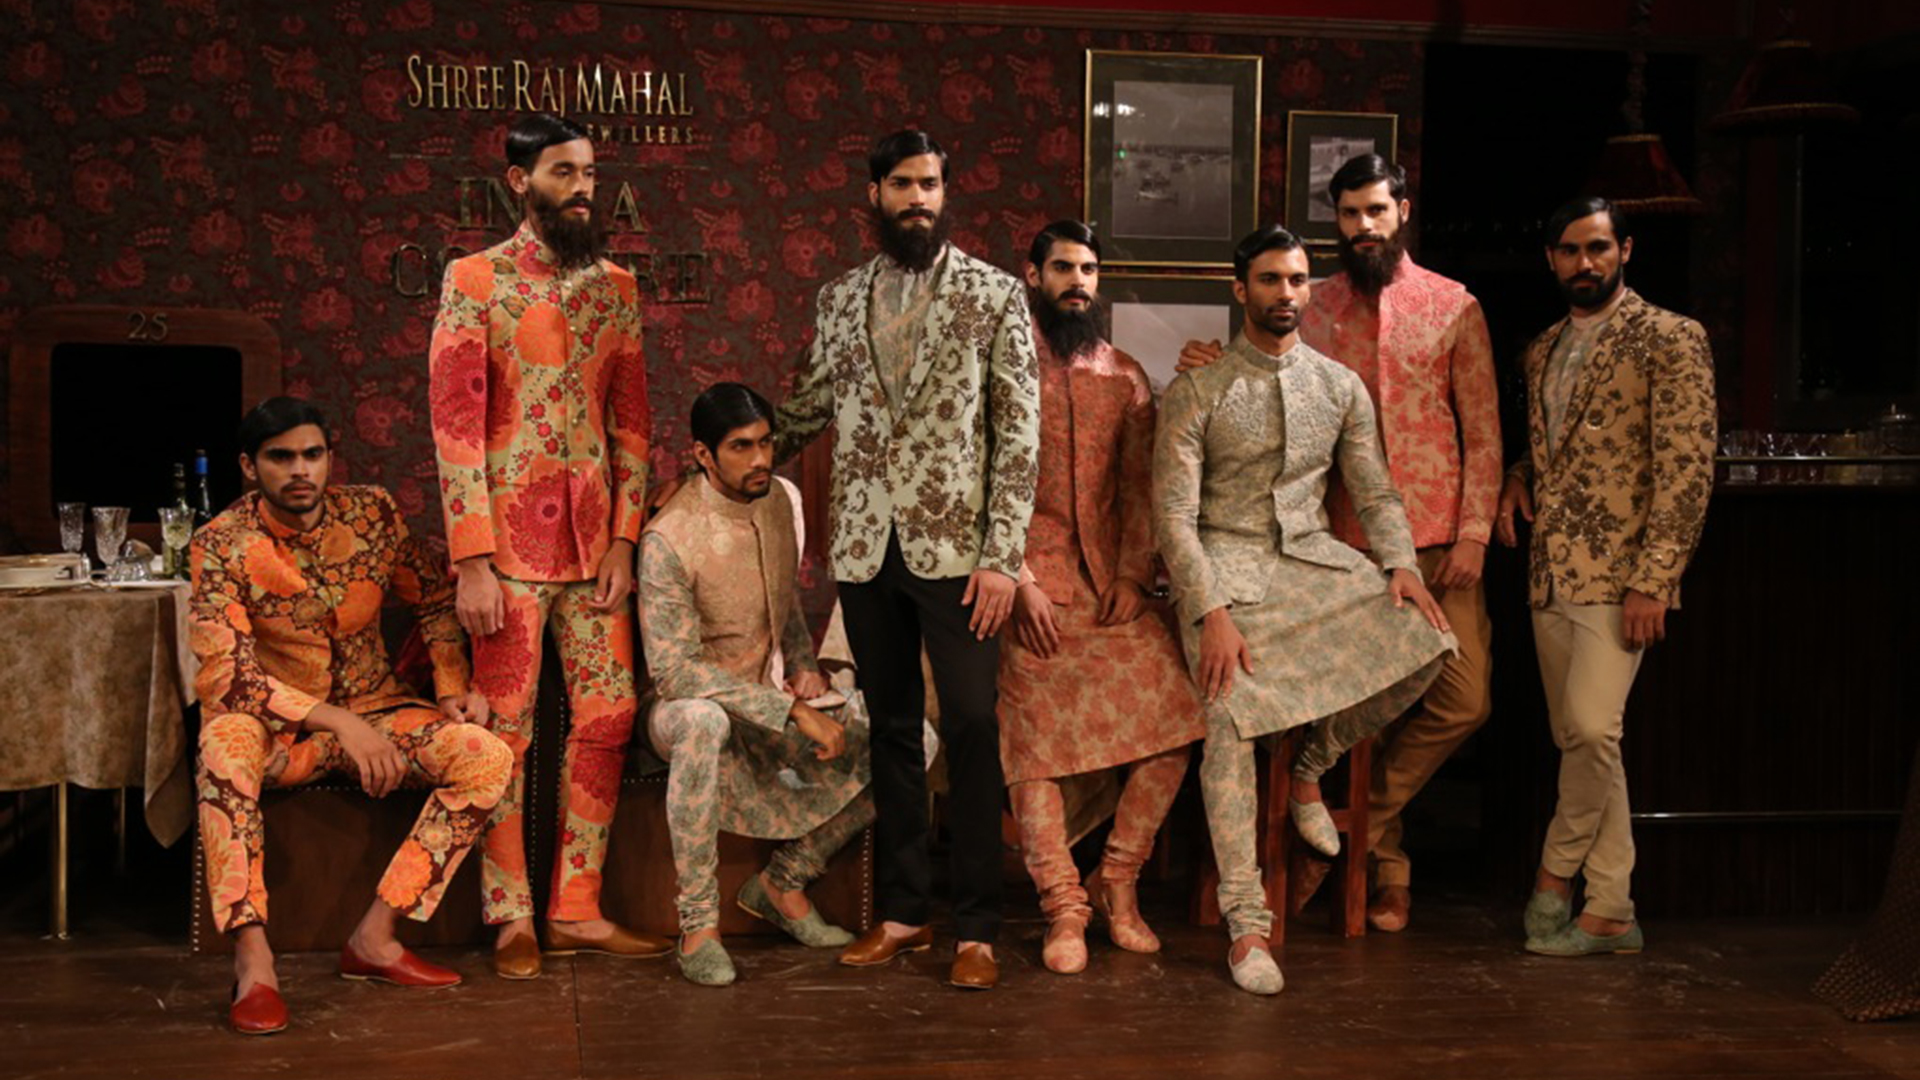 Designers Who Aced the Creation of Fun & Eclectic Groom Attire